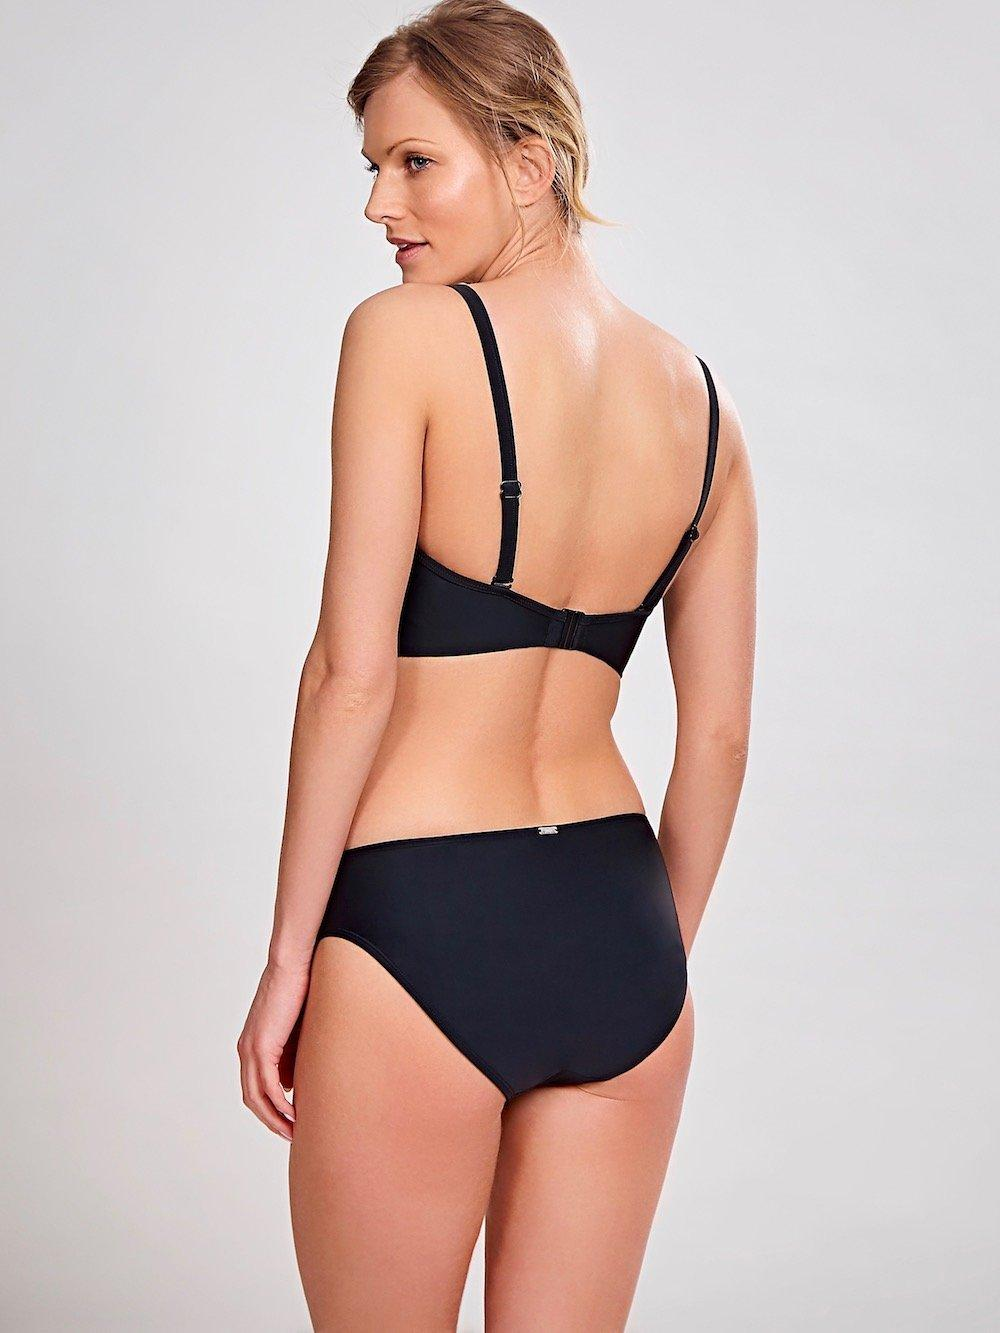 Black Top Anya Lyst Bandeau In Panache PikXuZ